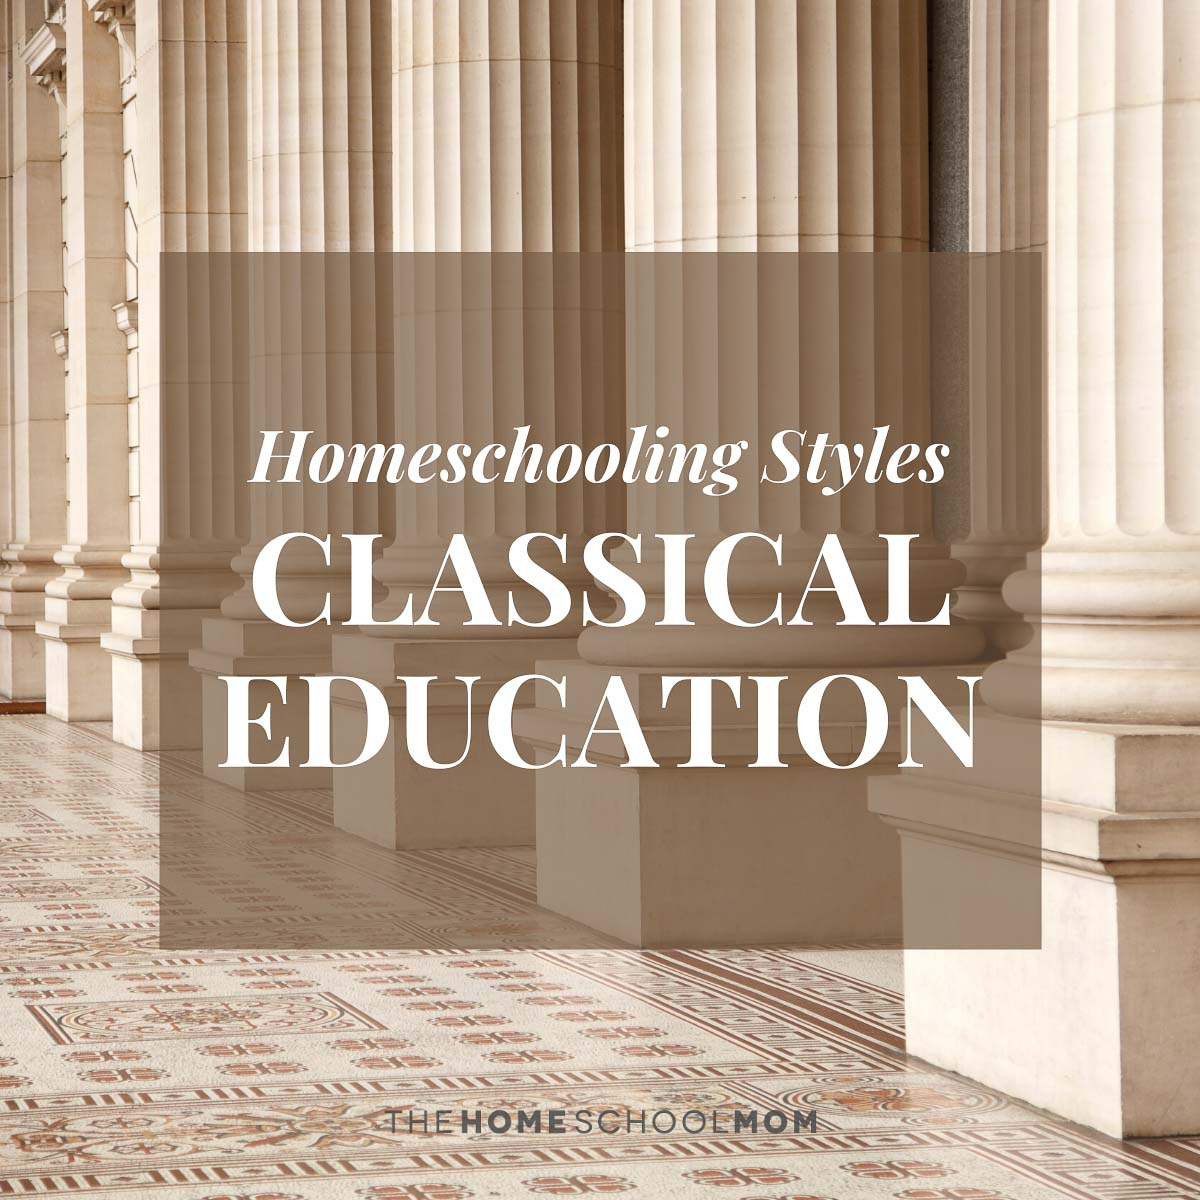 Homeschooling Styles: classical education - TheHomeSchoolMom